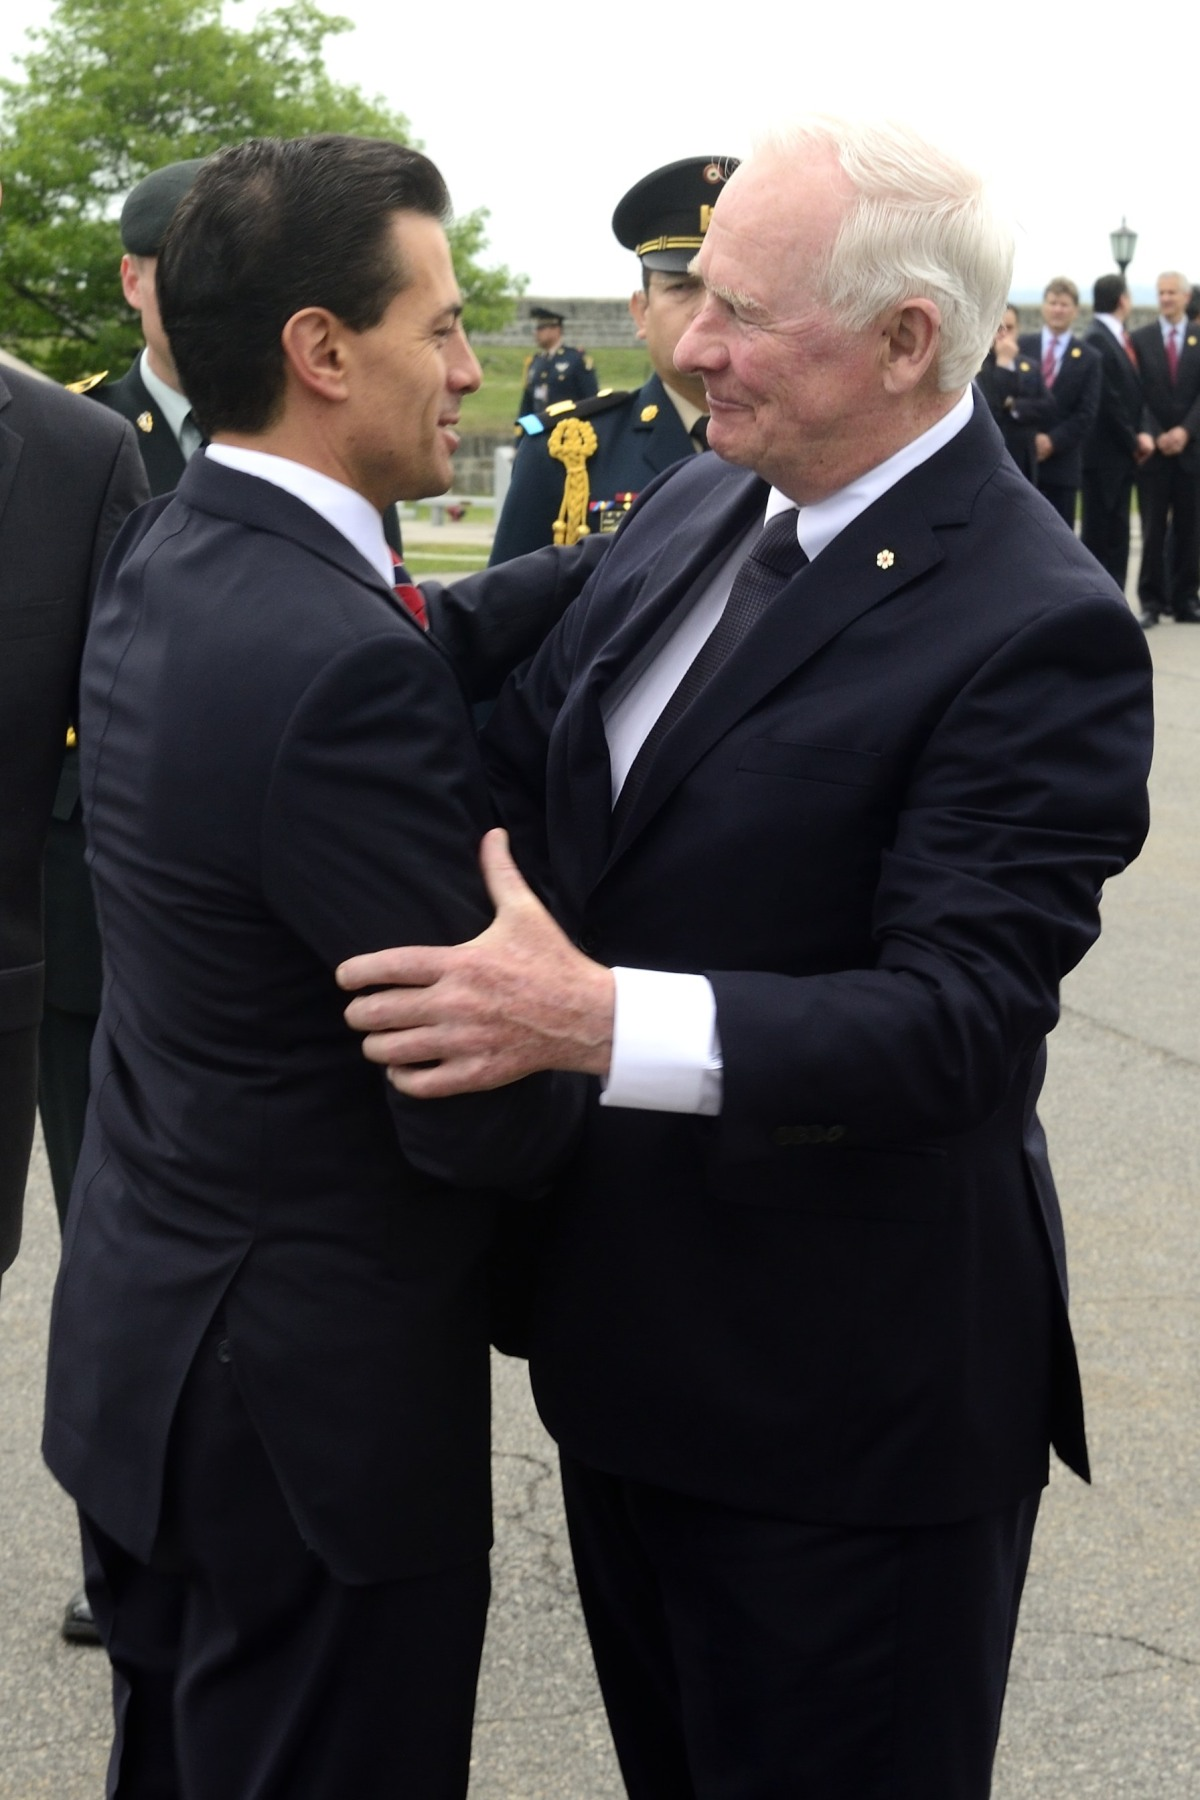 His Excellency the Right Honourable David Johnston, Governor General of Canada, welcomed His Excellency Enrique Peña Nieto, President of the United Mexican States, to Canada on June 27, 2016.